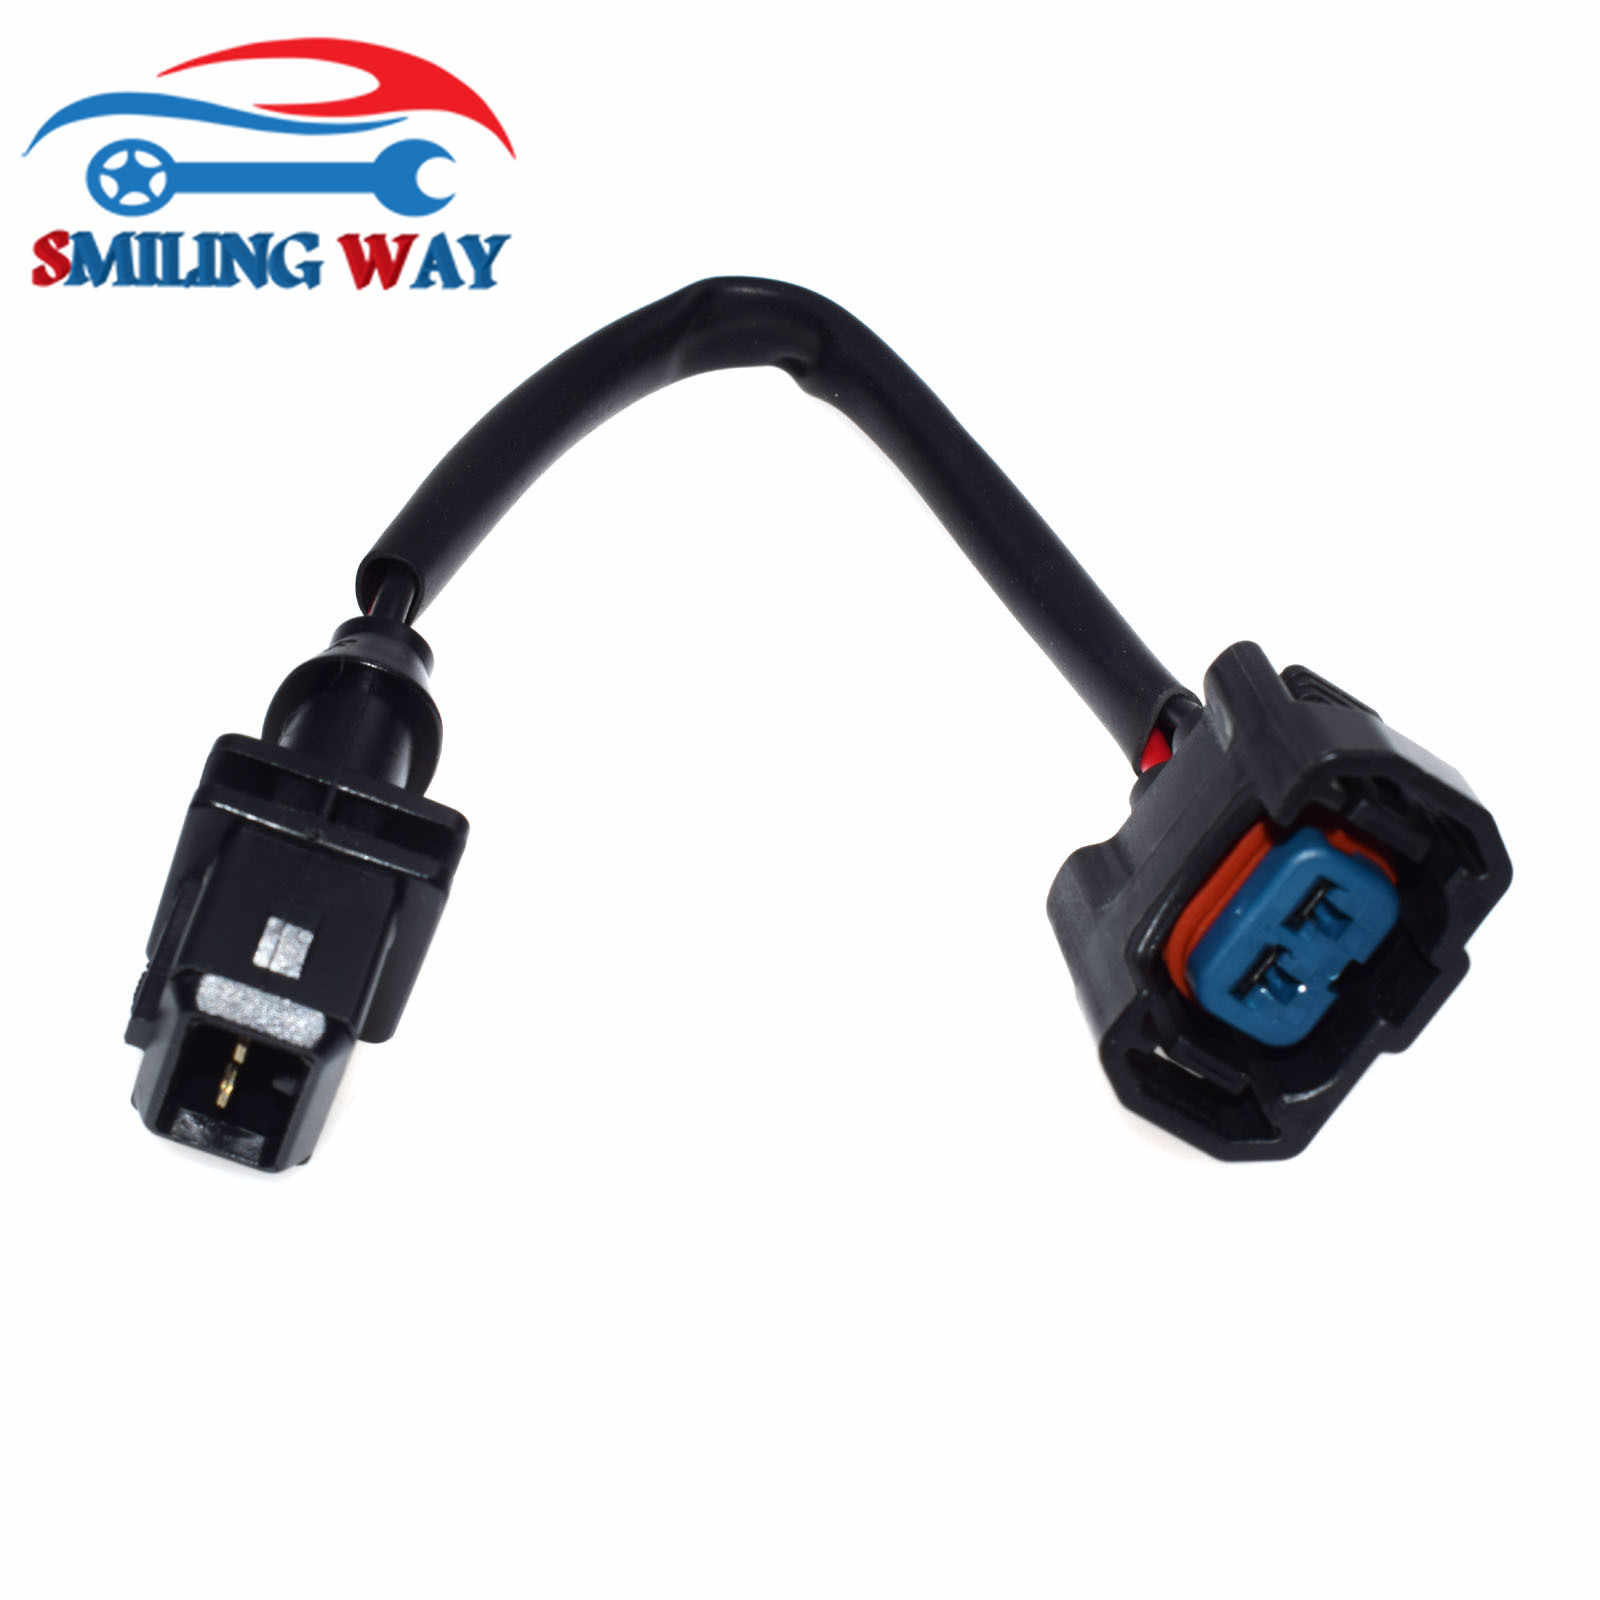 smiling way obd1 to obd2 fuel injector conversion jumper connector wire harness wiring pigtail plug  [ 1600 x 1600 Pixel ]